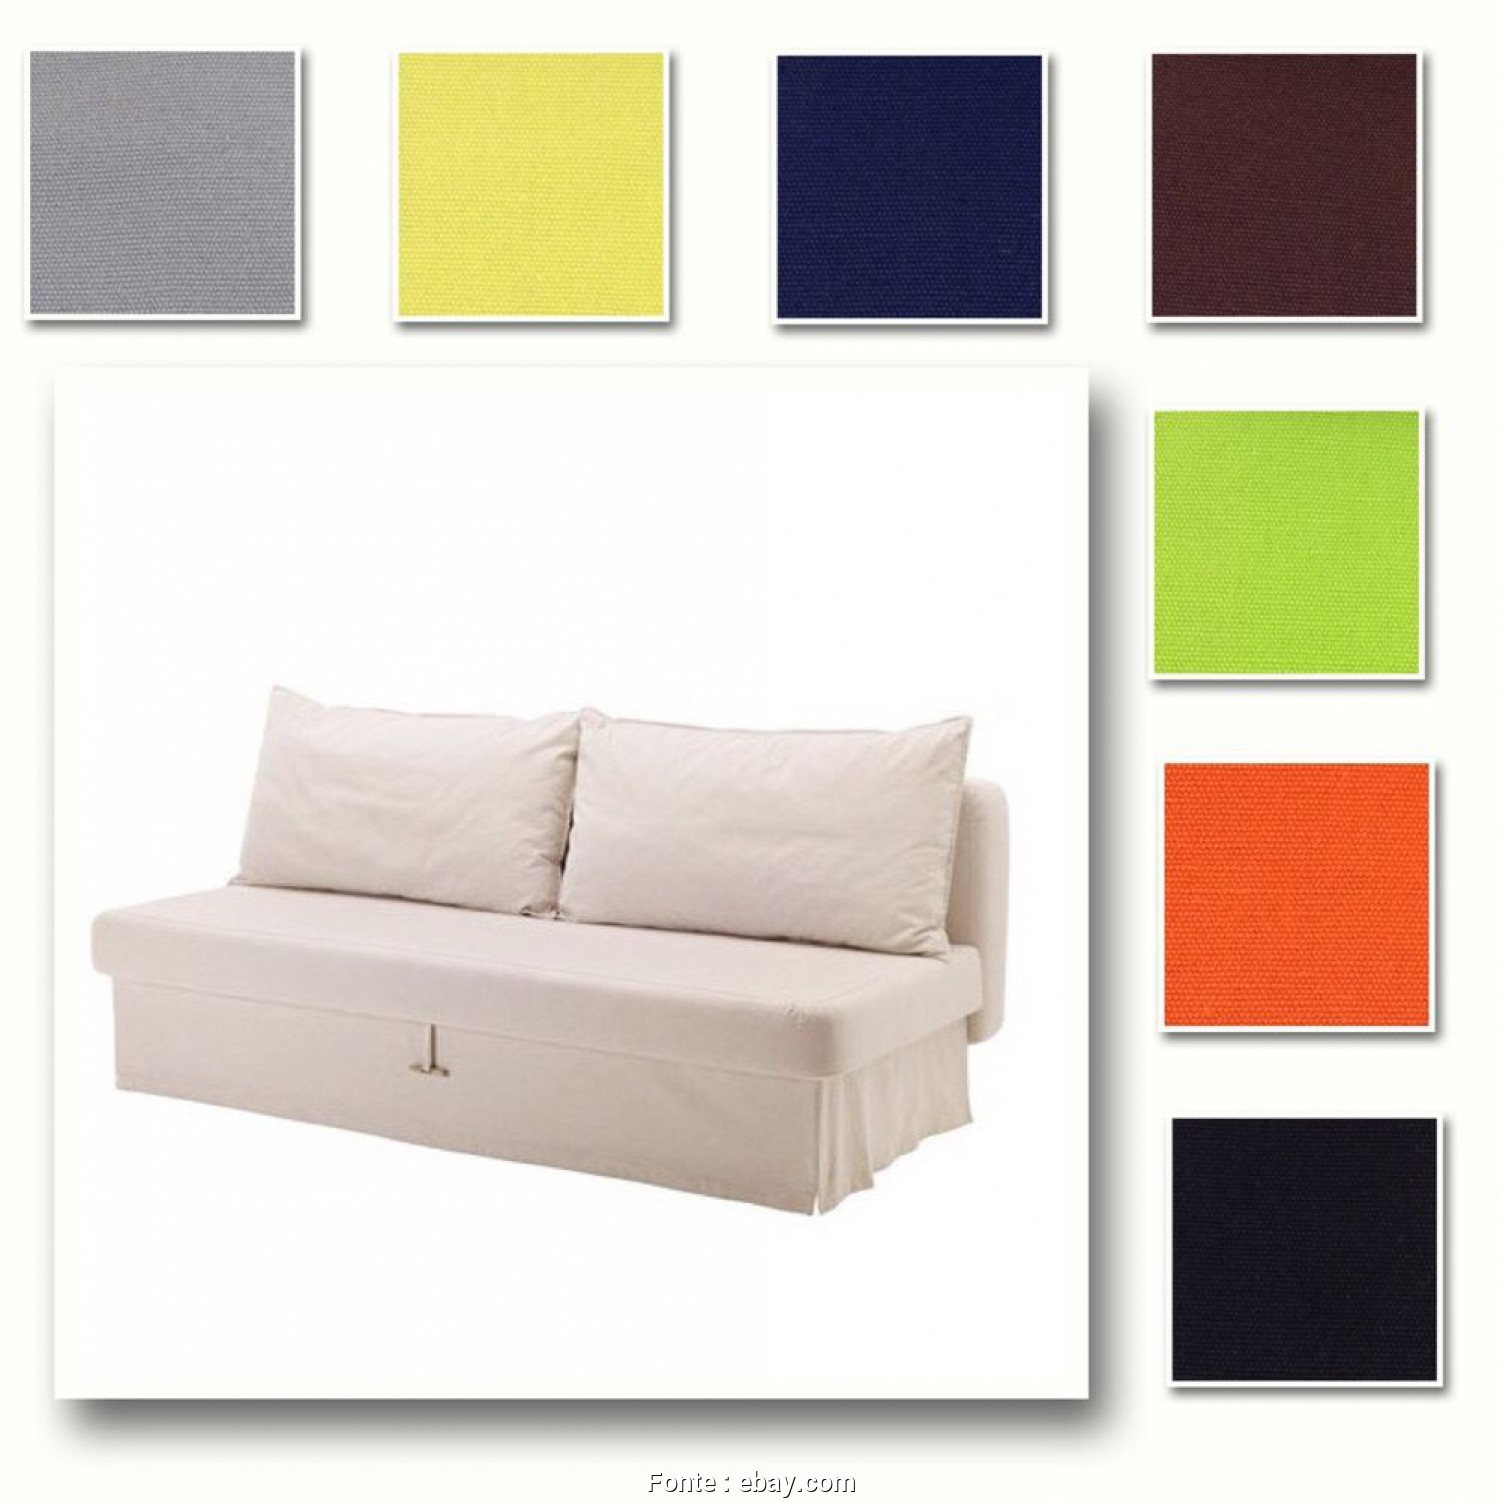 How To Disassemble An Ikea Futon, Favoloso Details About Custom Made Cover Fits IKEA HIMMENE Three-Seat Sofa Bed, Sleeper, Sofa, Cover